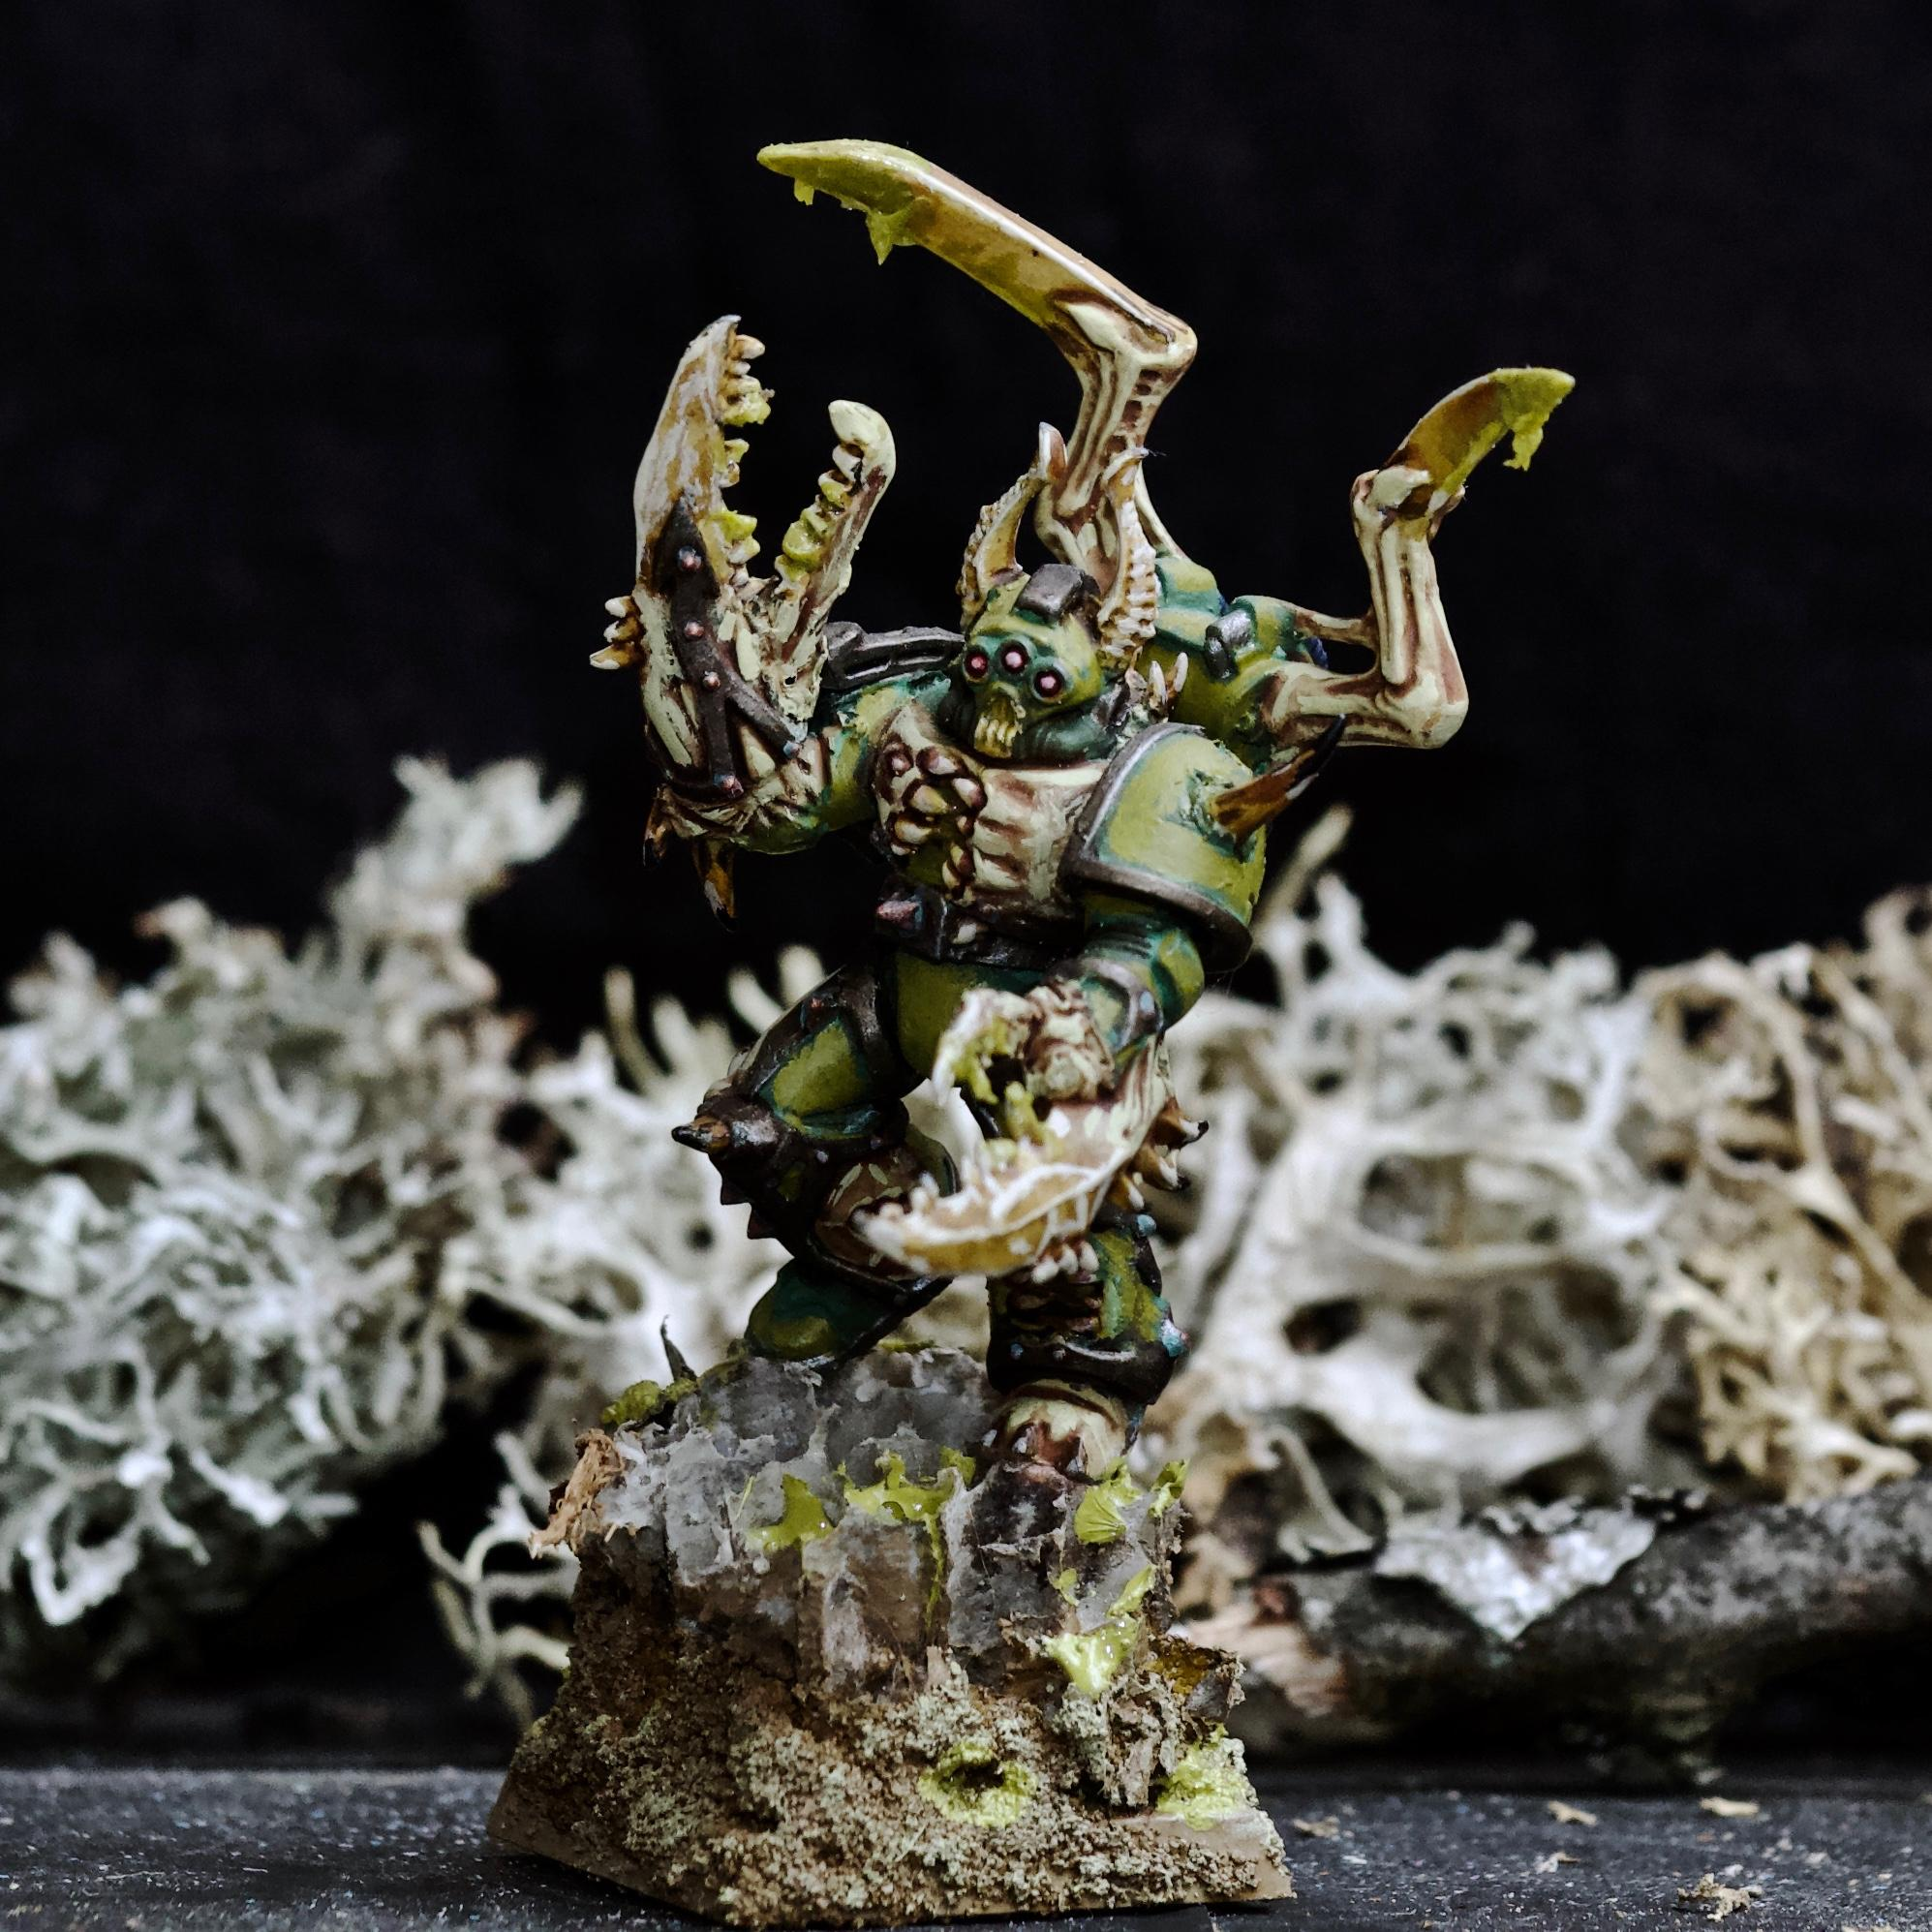 Awesome Photos, Blight, By Andrey Mishuta, Chaos, Chaos Space Marines, Claw, Conversion, Death Guard, Decay, Heretic Astartes, M.a.k., Nurgle, Plague Marines, Possessed, Slime, Spikes, Warhammer 40,000